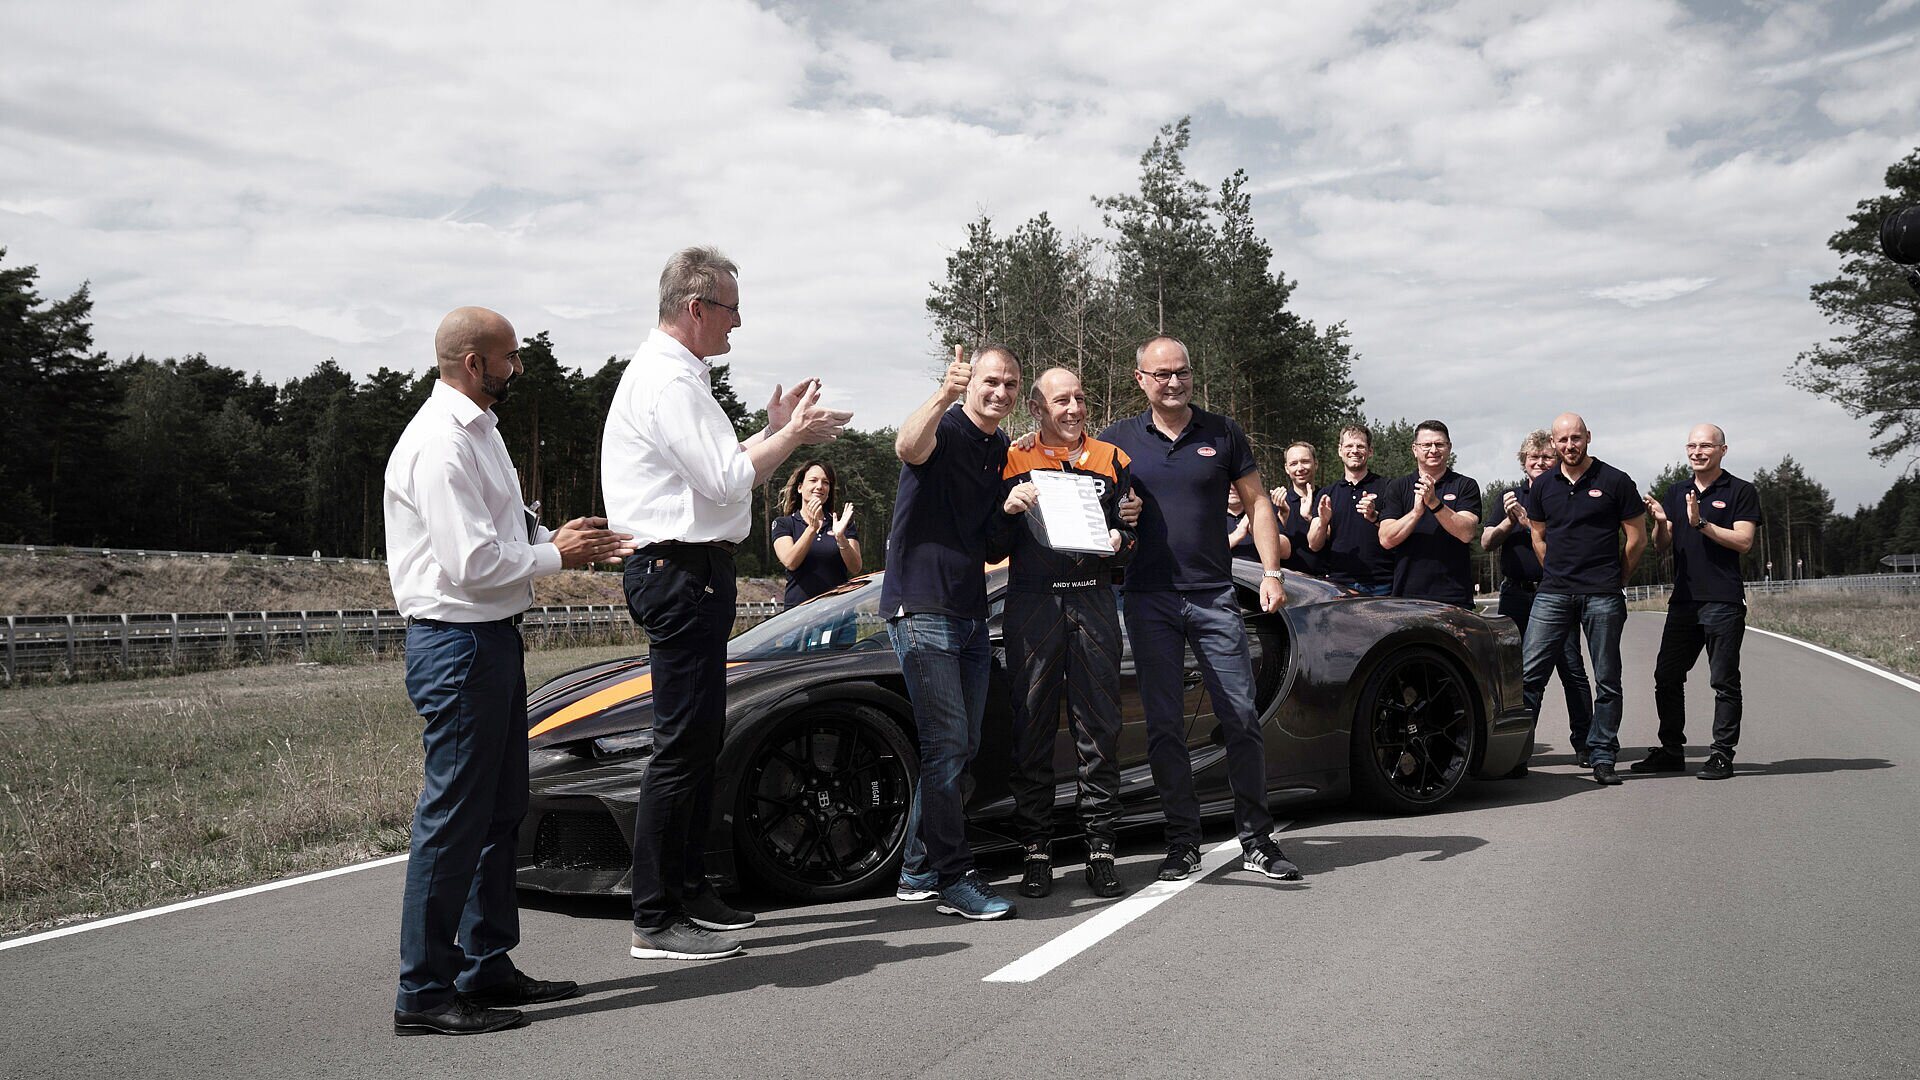 Stephan Ellrott and his team on the day the Bugatti Chiron Super Sport 300+ broke the magical 300-mile-per-hour barrier.